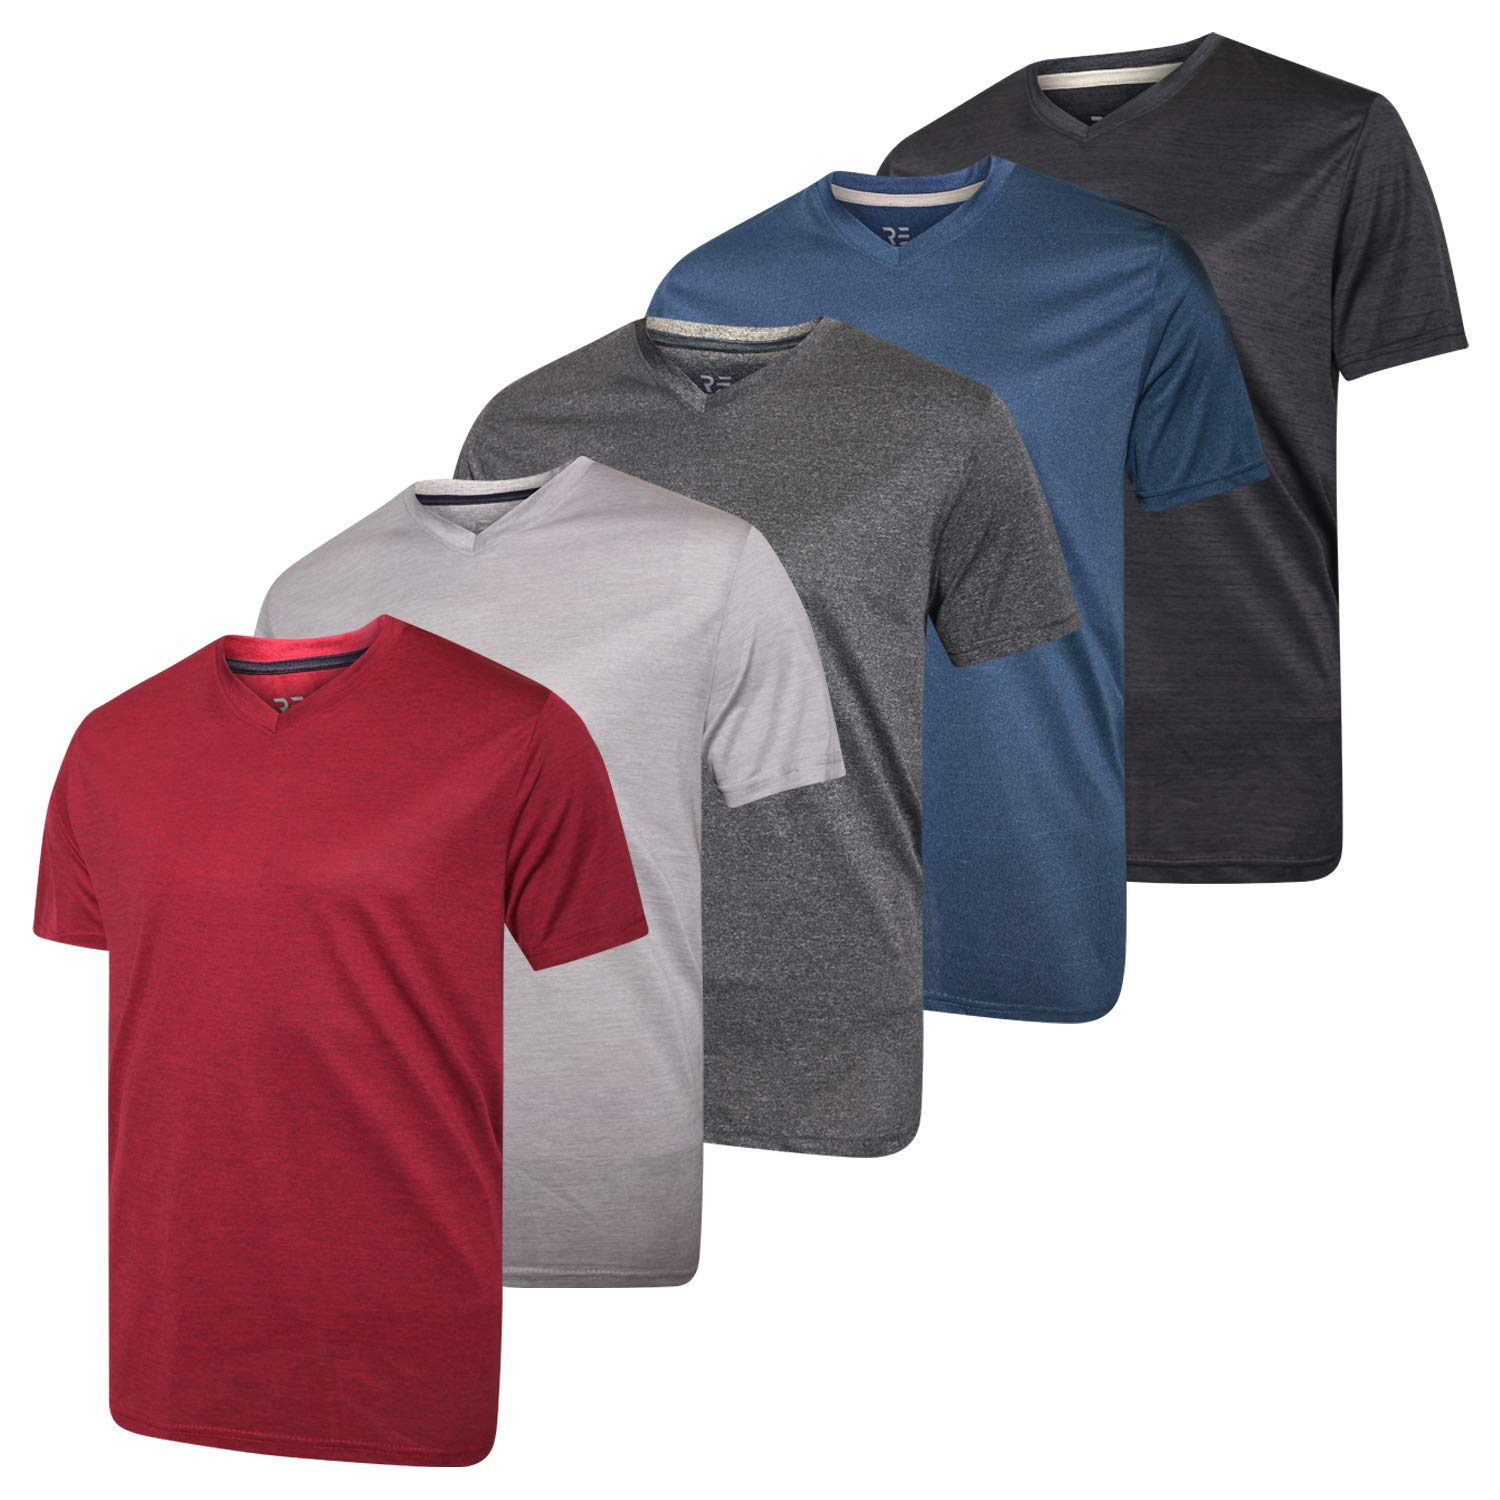 5 Pack:Men's V Neck Quick Dry Fit Dri-Fit Short Sleeve Active Wear Training Athletic Essentials T-Shirt Tee Fitness Gym Workout Undershirt Top-Set 2,XXL by Real Essentials